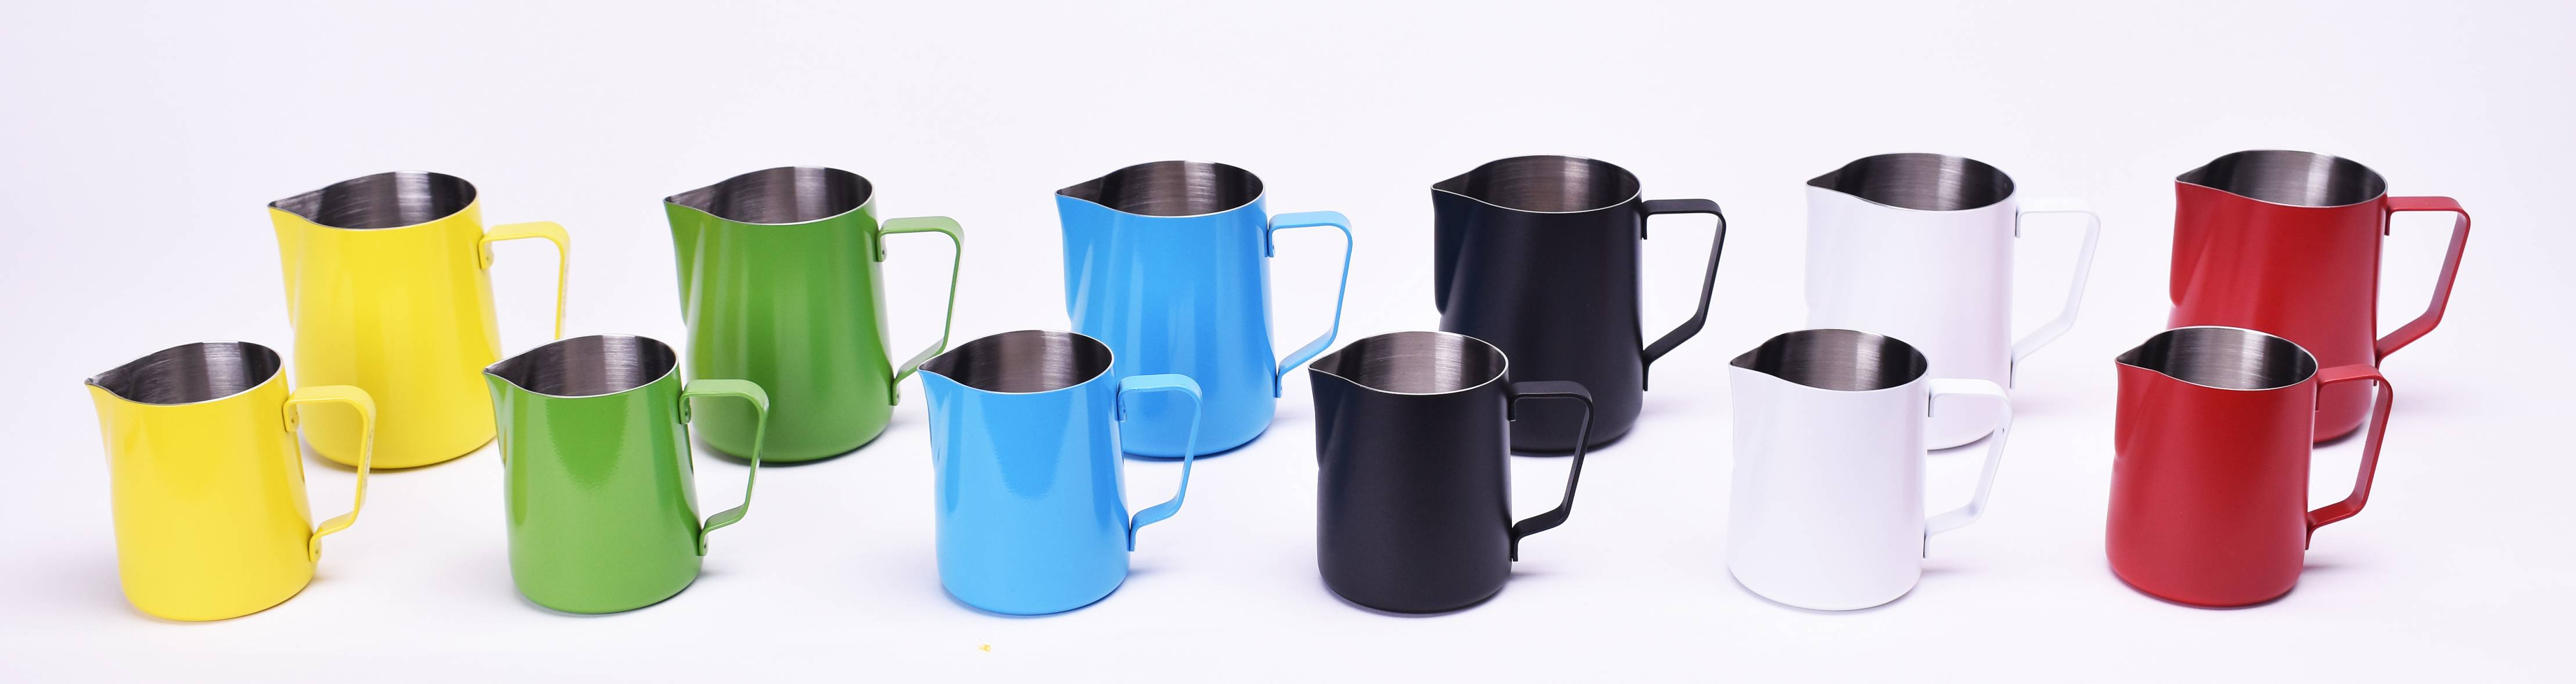 k-6_milk_pitcher_colors